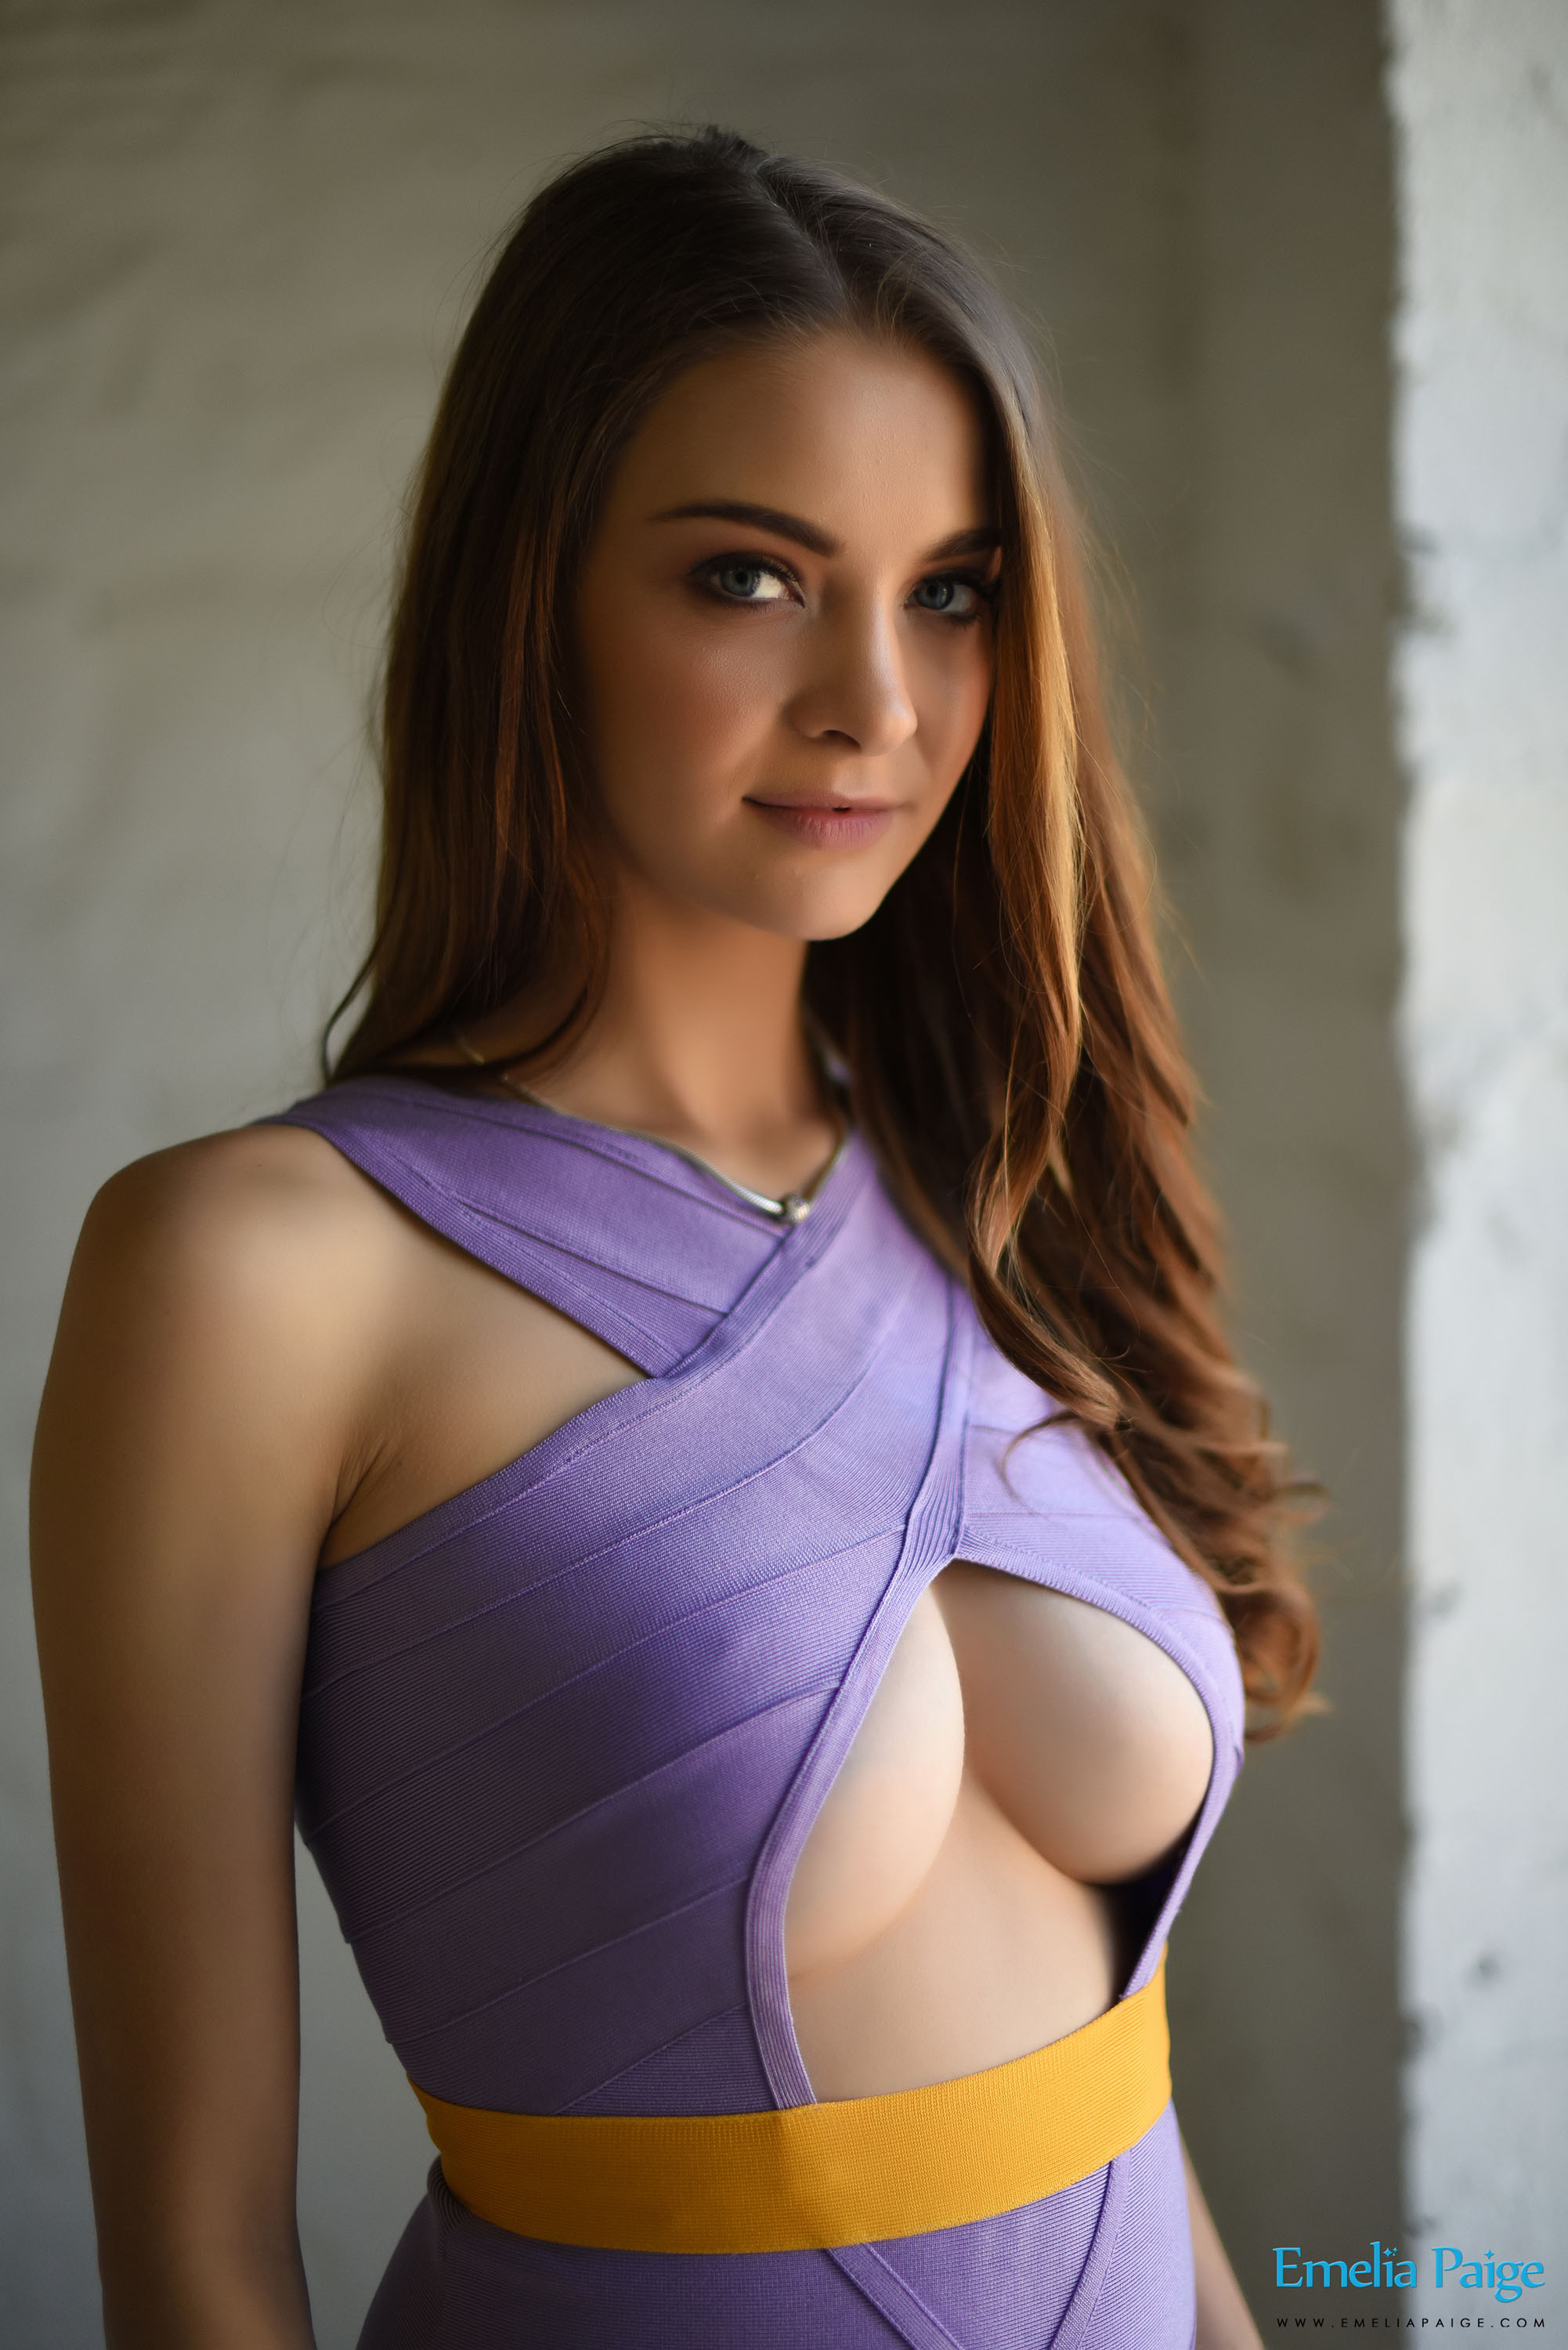 Emelia Page boobs bursting from purple dress